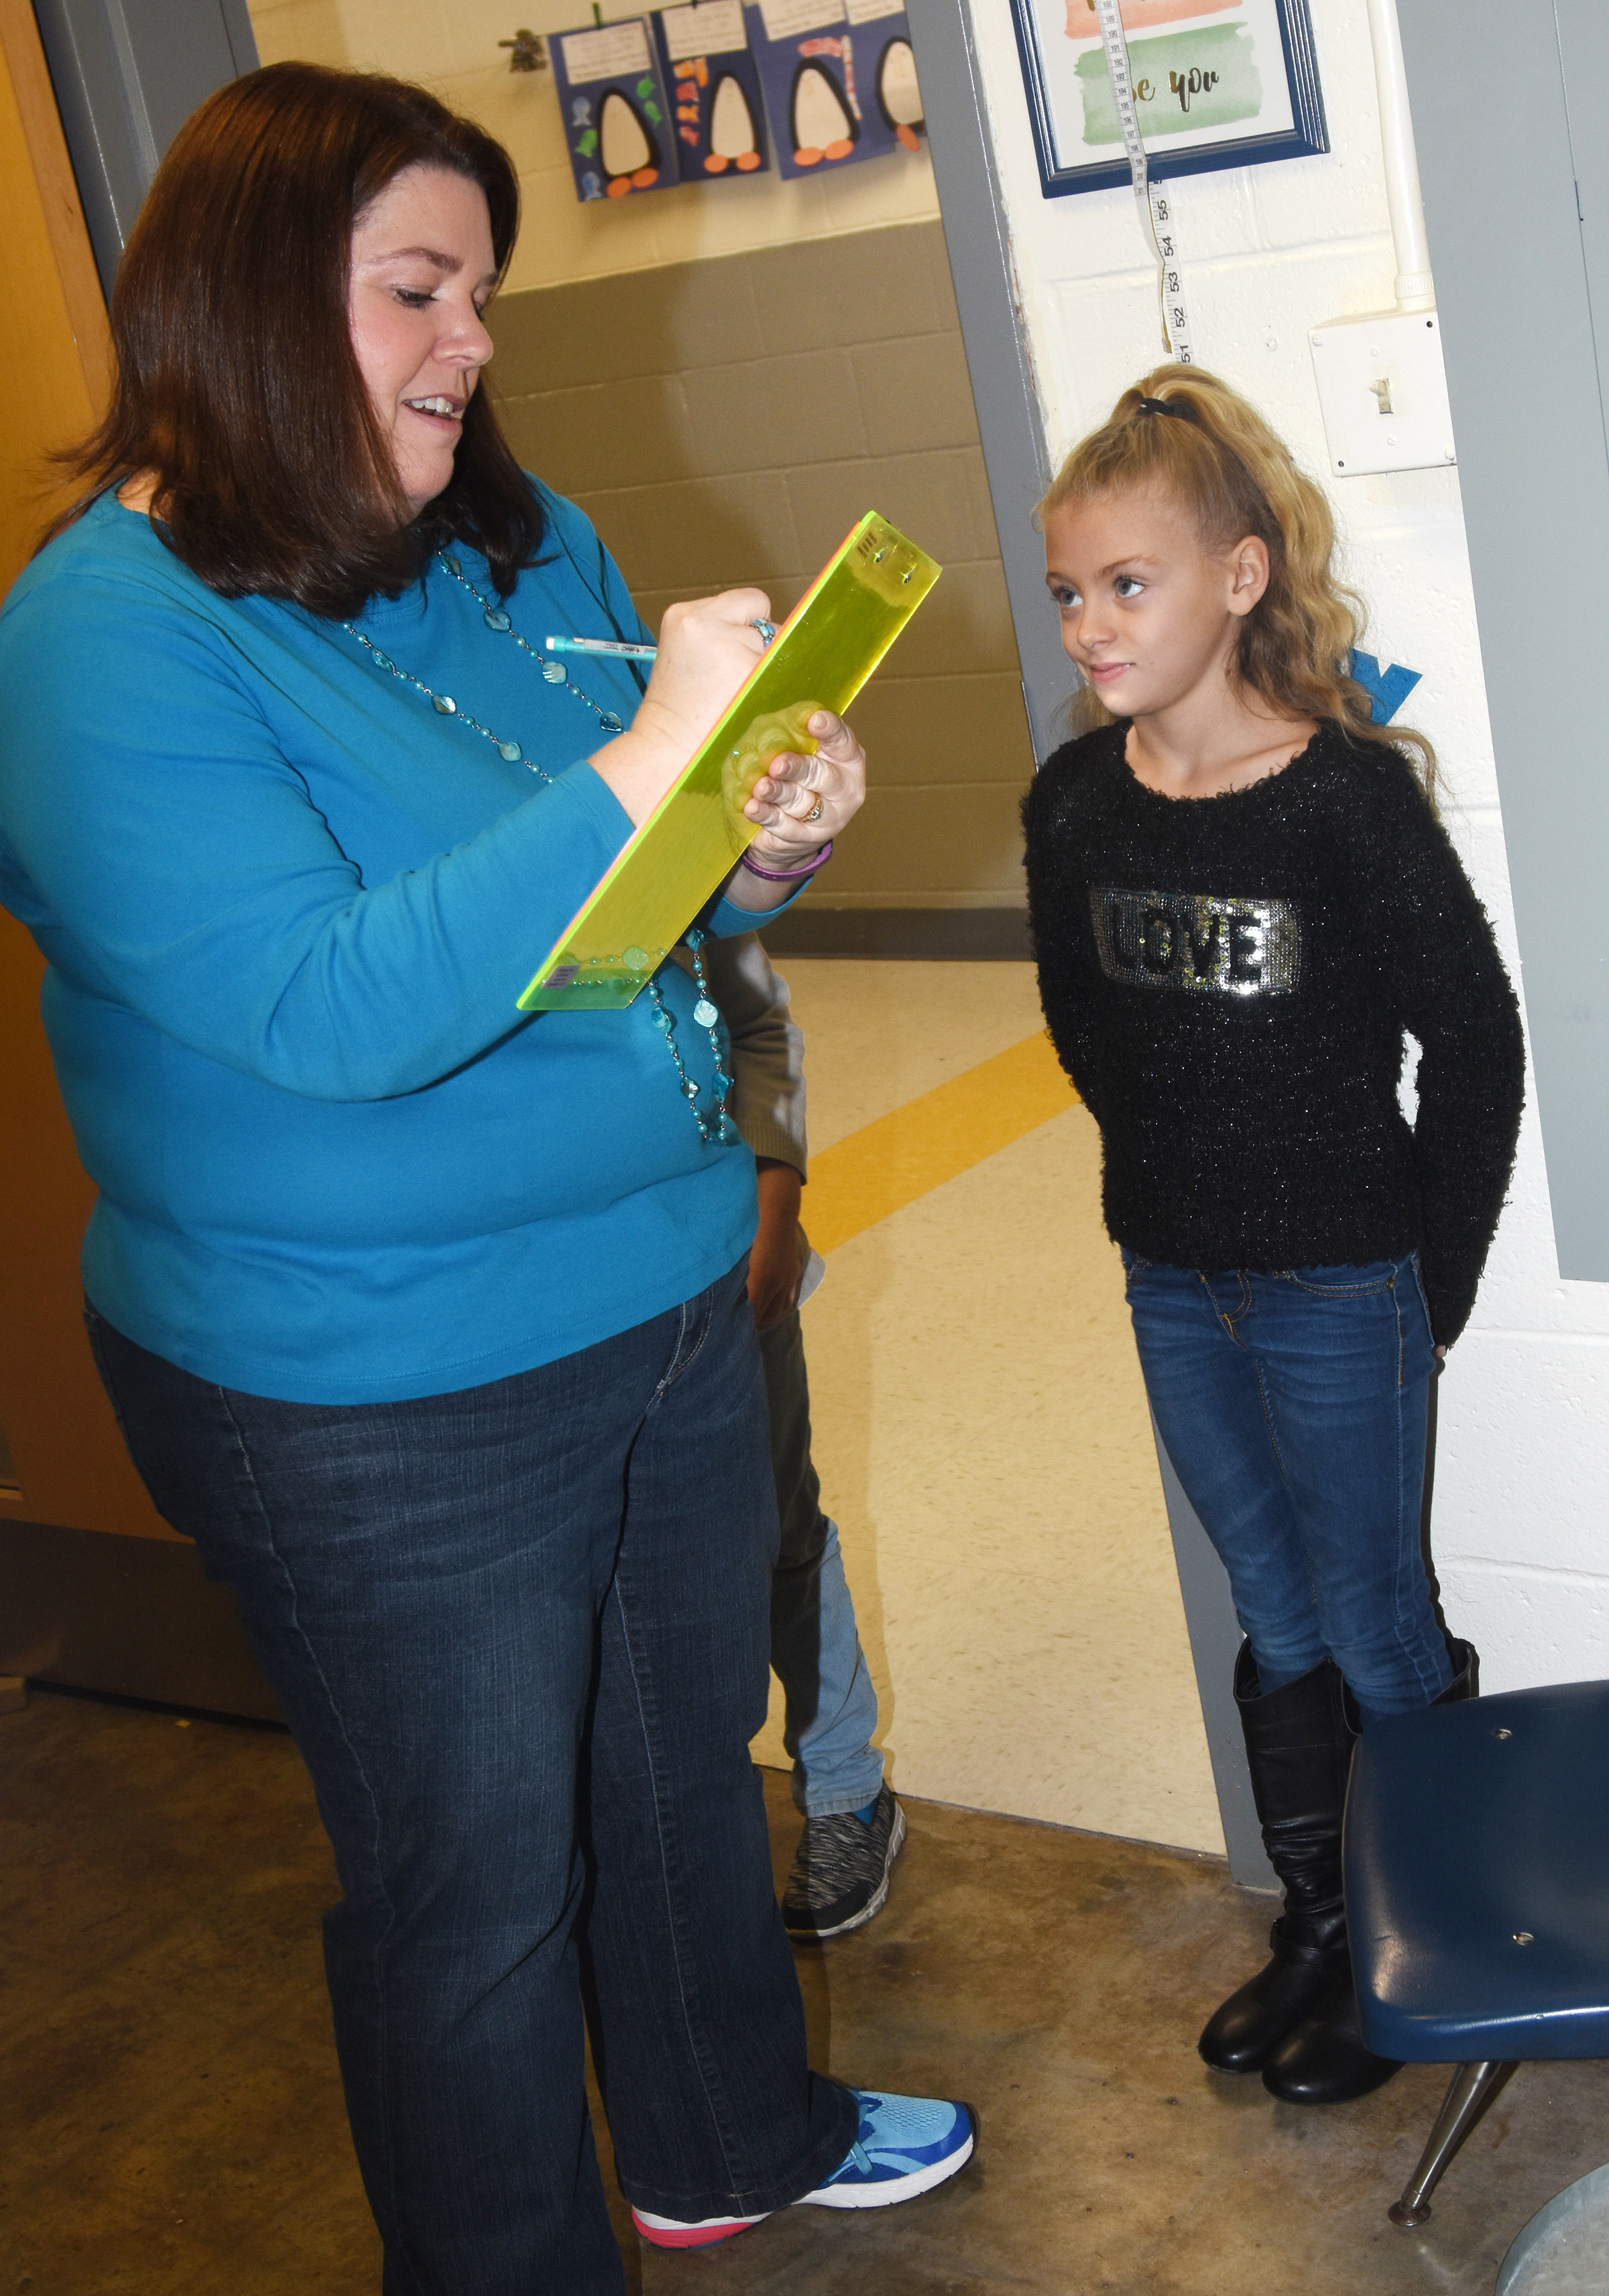 CES Guidance Counselor Beth Wiedewitsch measures first-grader Aliyah Litsey to see how much she has grown.